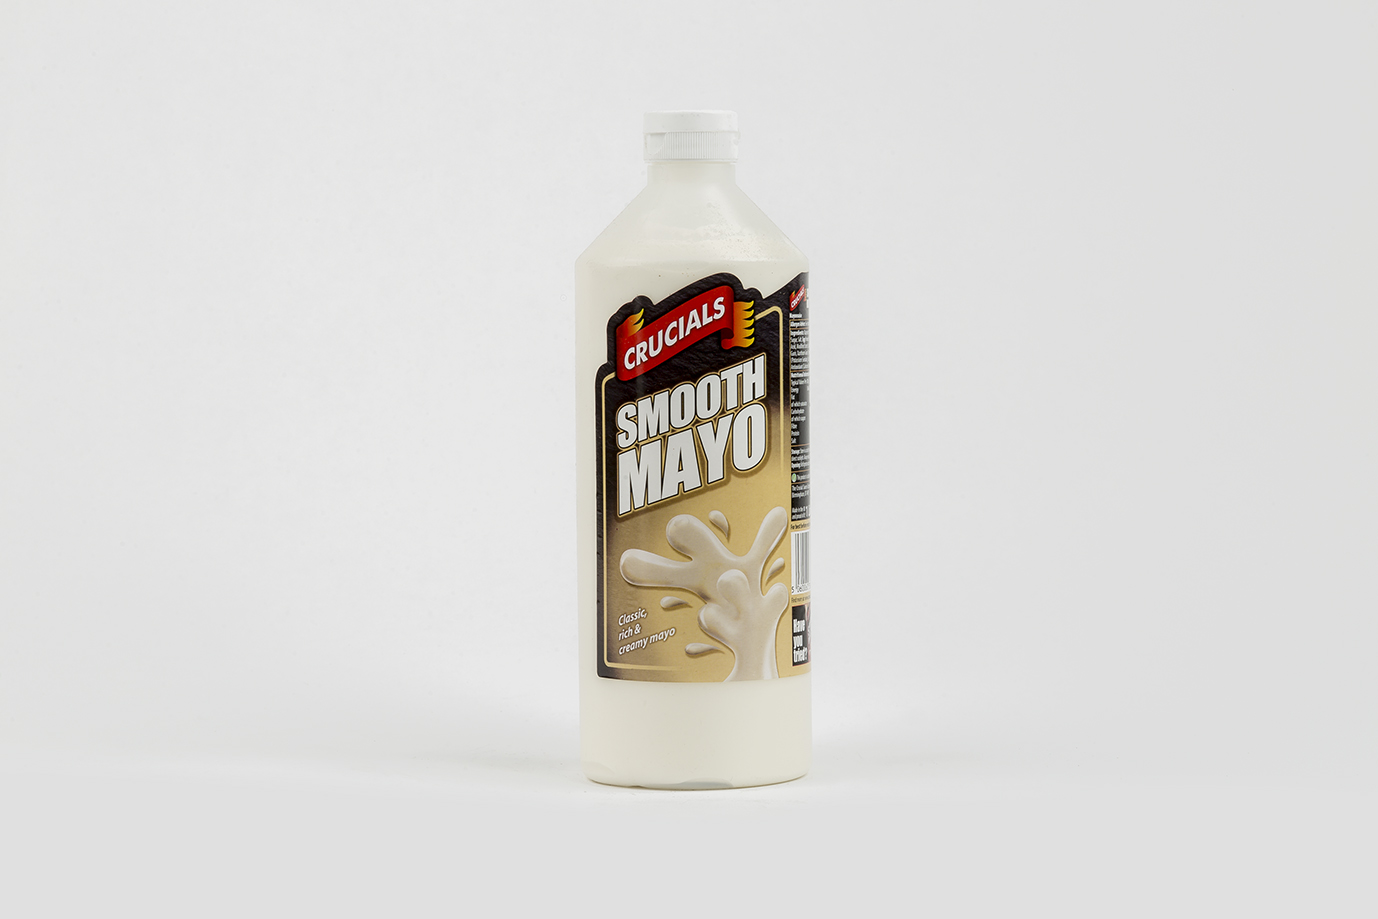 Image of Smooth Mayo 1 Ltr - Crucials - Squeezy Bottle